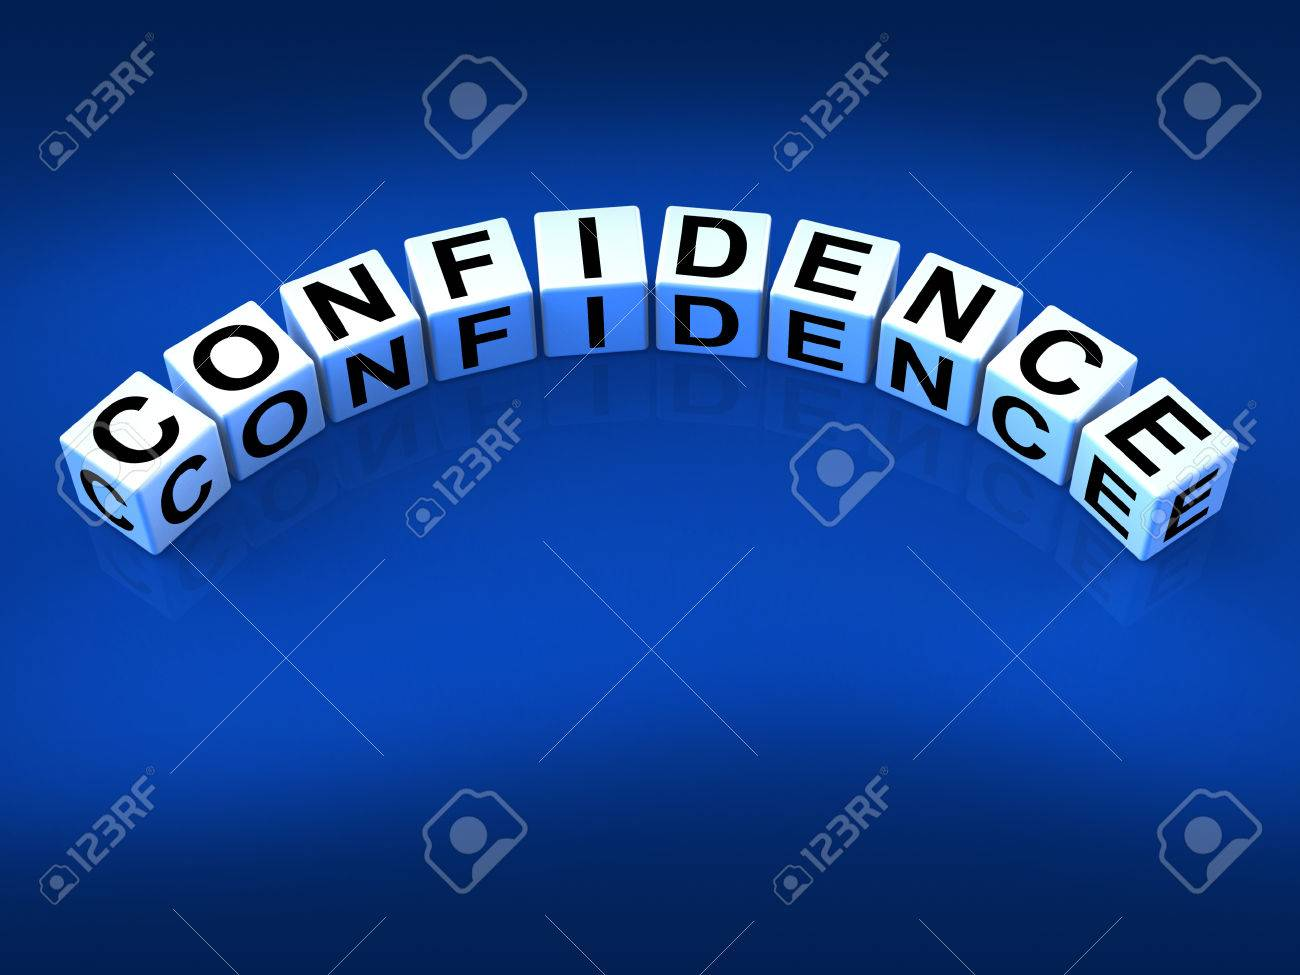 Confidence Dice Meaning Believe In Yourself And Certainty Stock